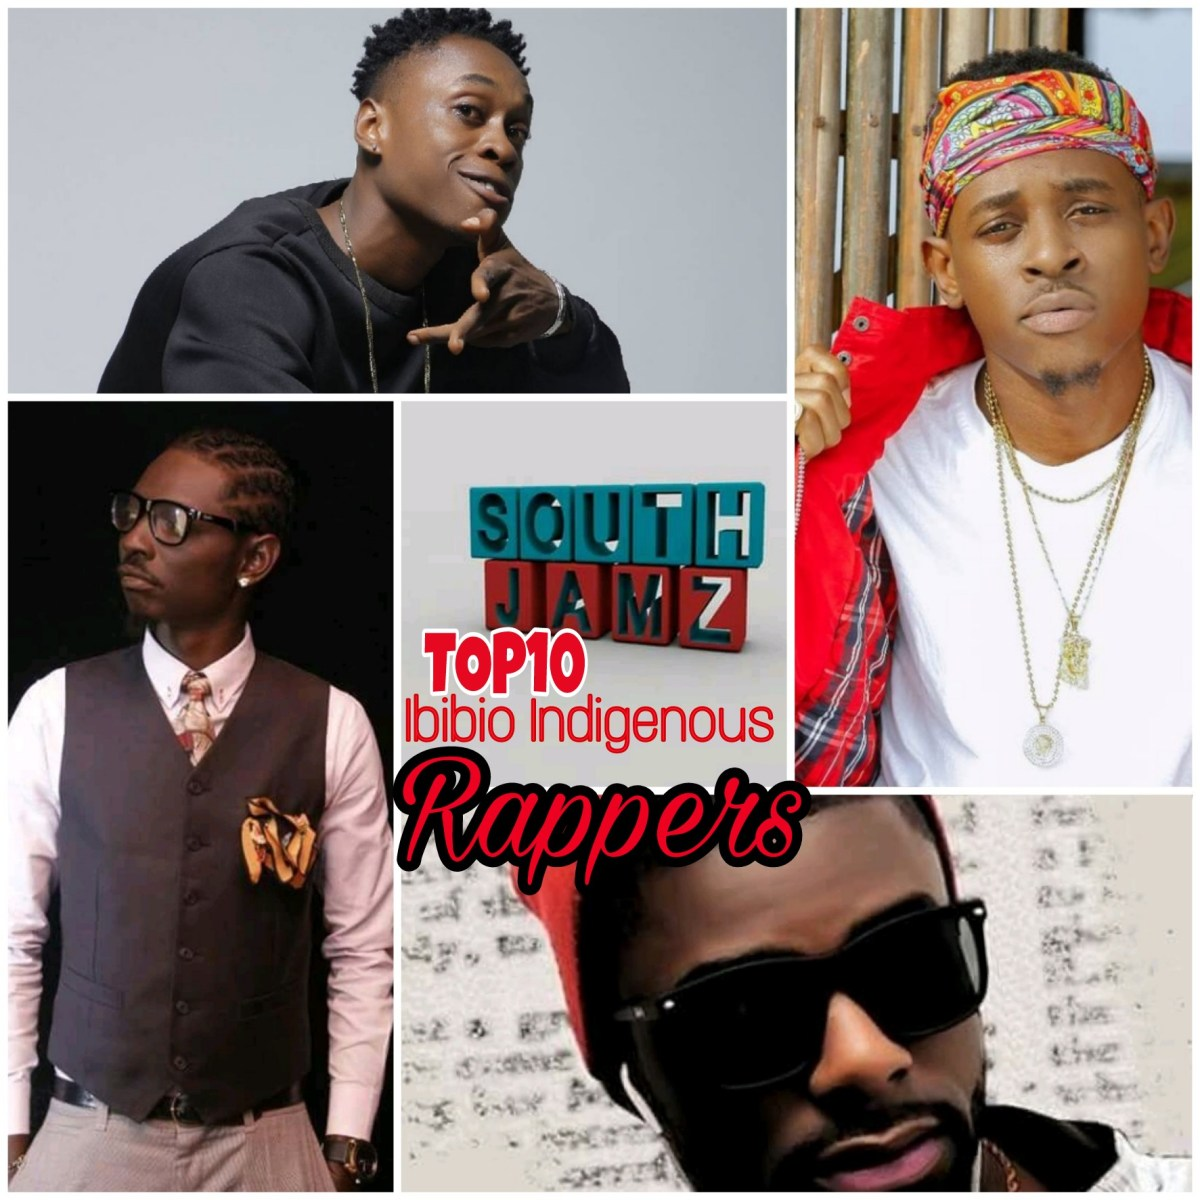 Top10 Ibibio Indigenous Rappers (SouthJamz rating)